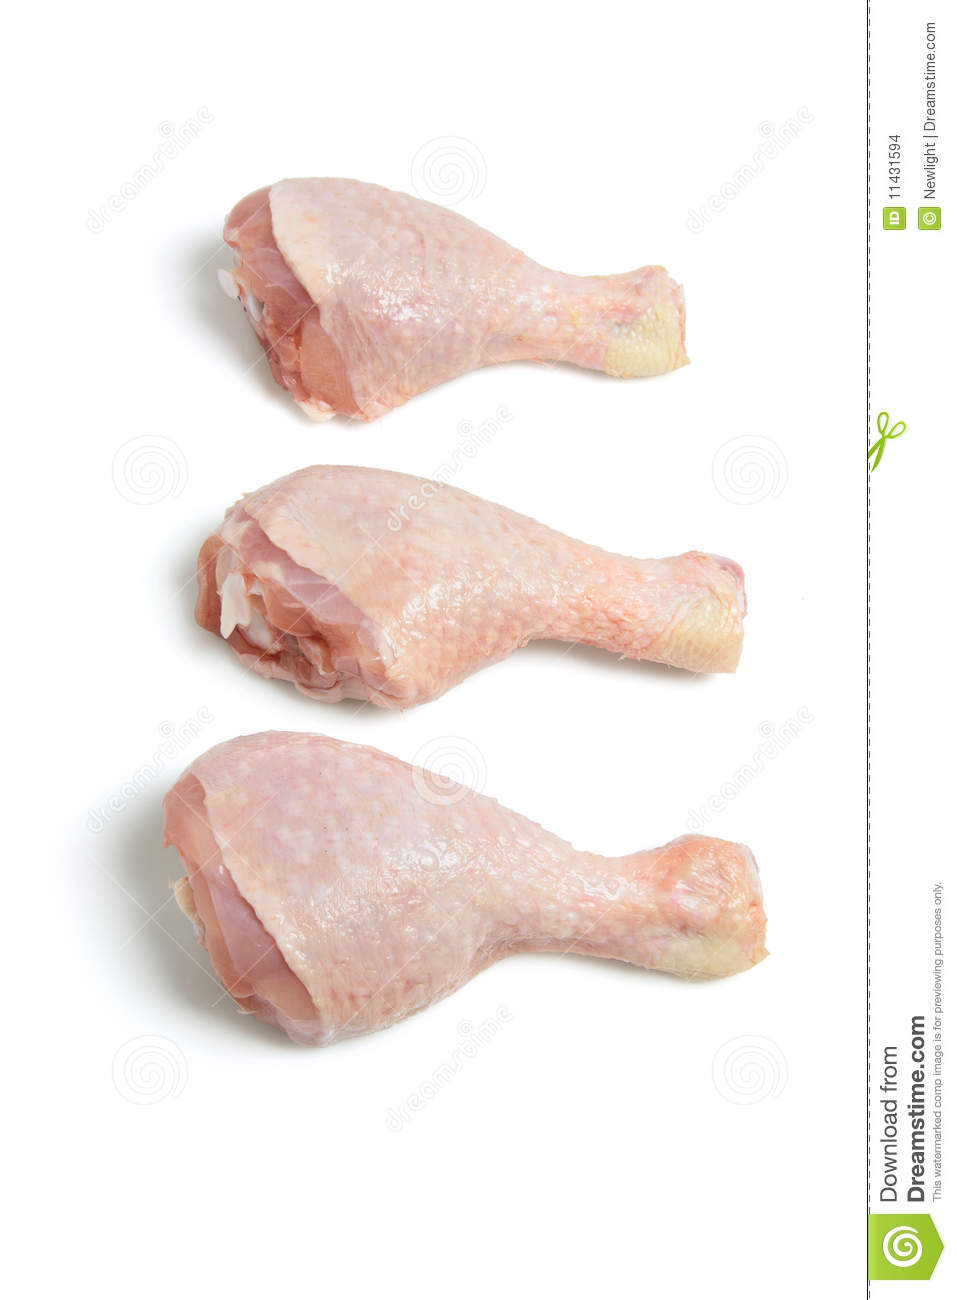 Raw Chicken Drumsticks Stock Images - Image: 11431594